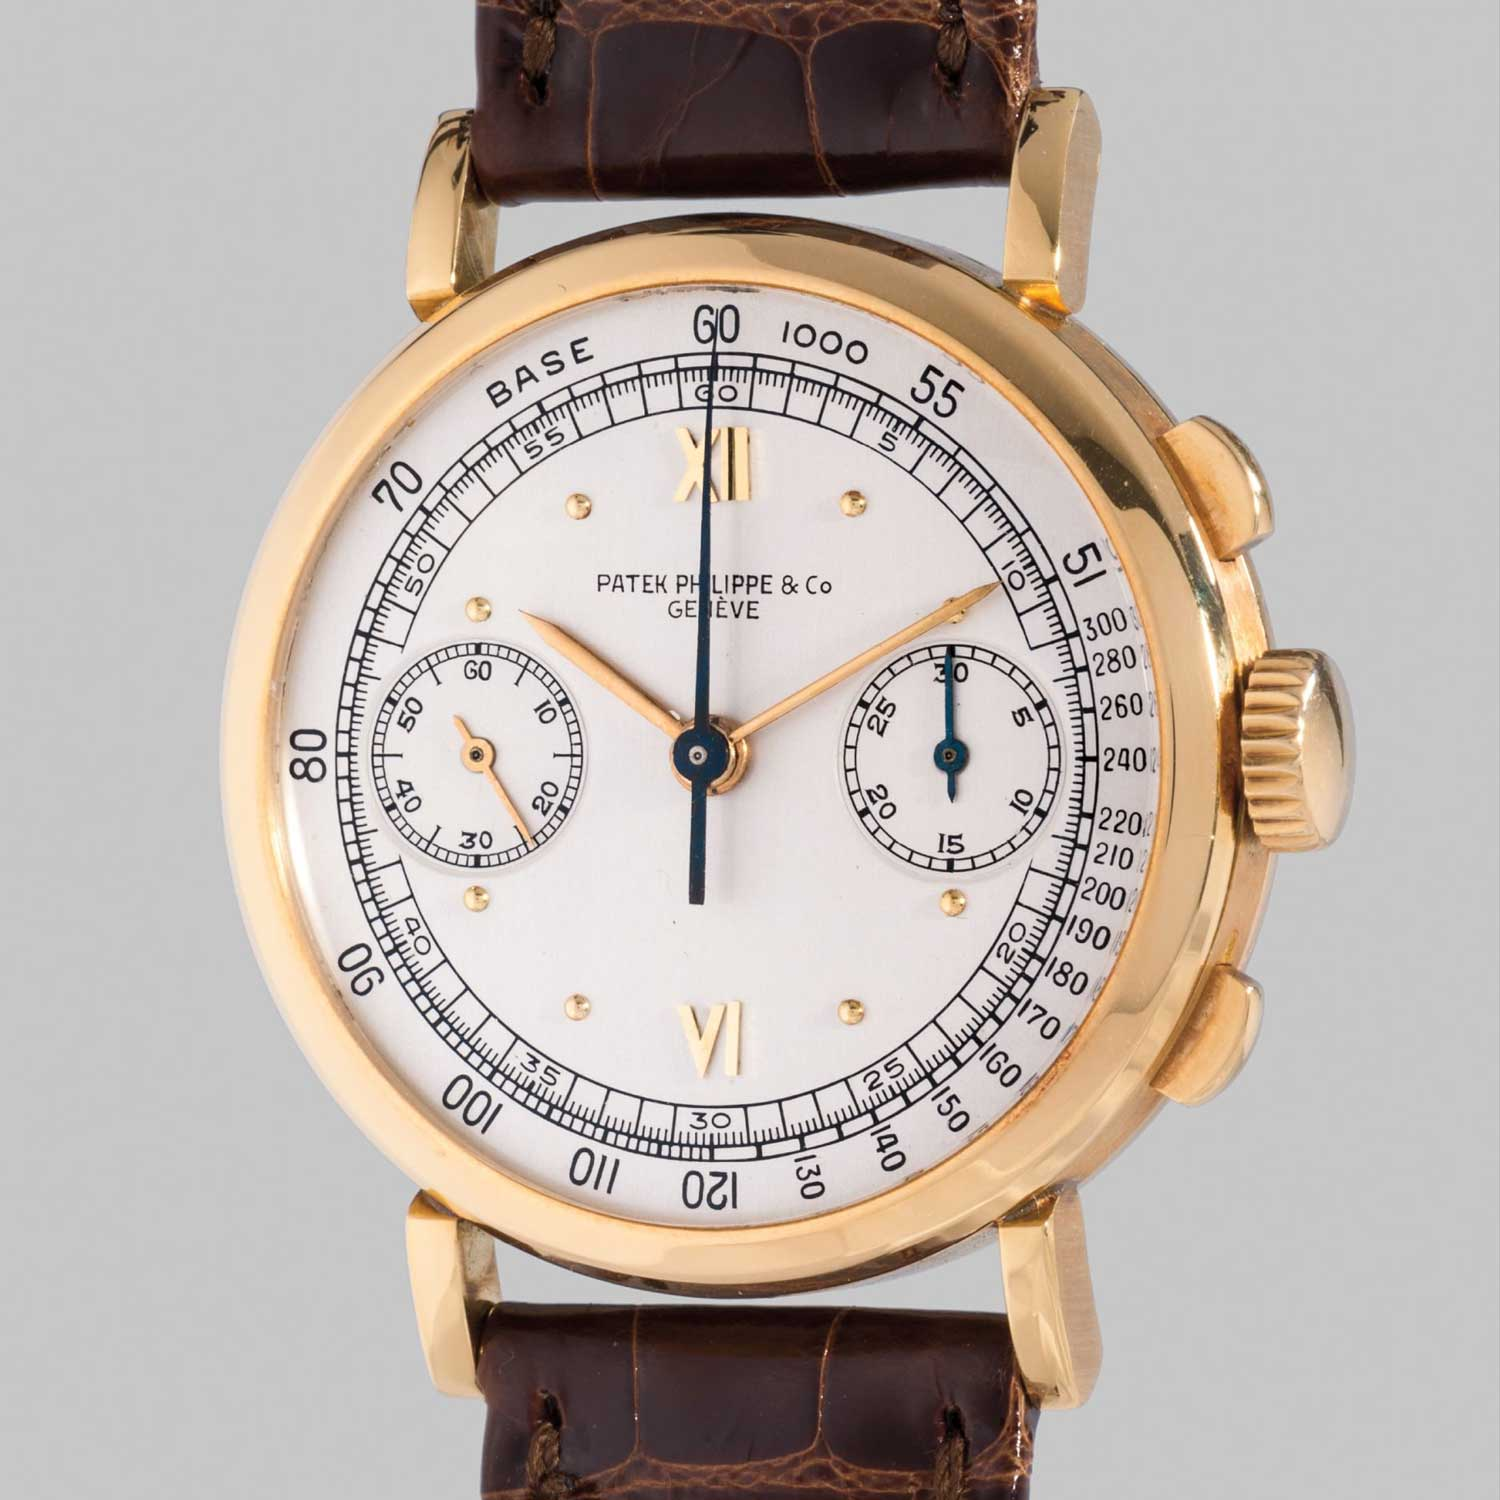 1940 Patek Philippe ref. 591 yellow gold chronograph with Roman numerals (Image: PhillipsWatches.com)